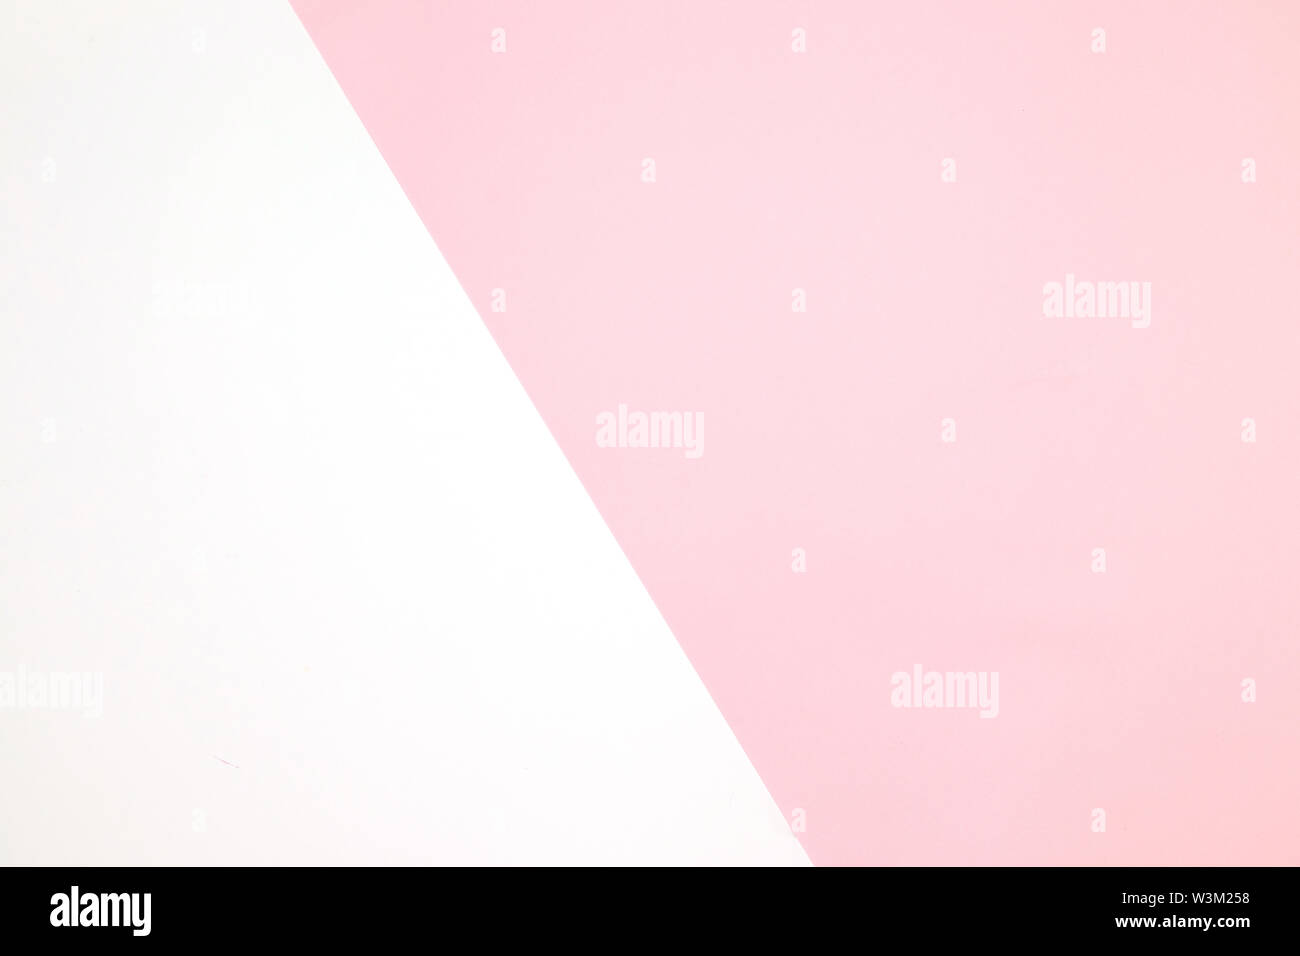 Pink and white texture in a fashionable pastel color with a top view, minimal concept, flat lay. - Stock Image